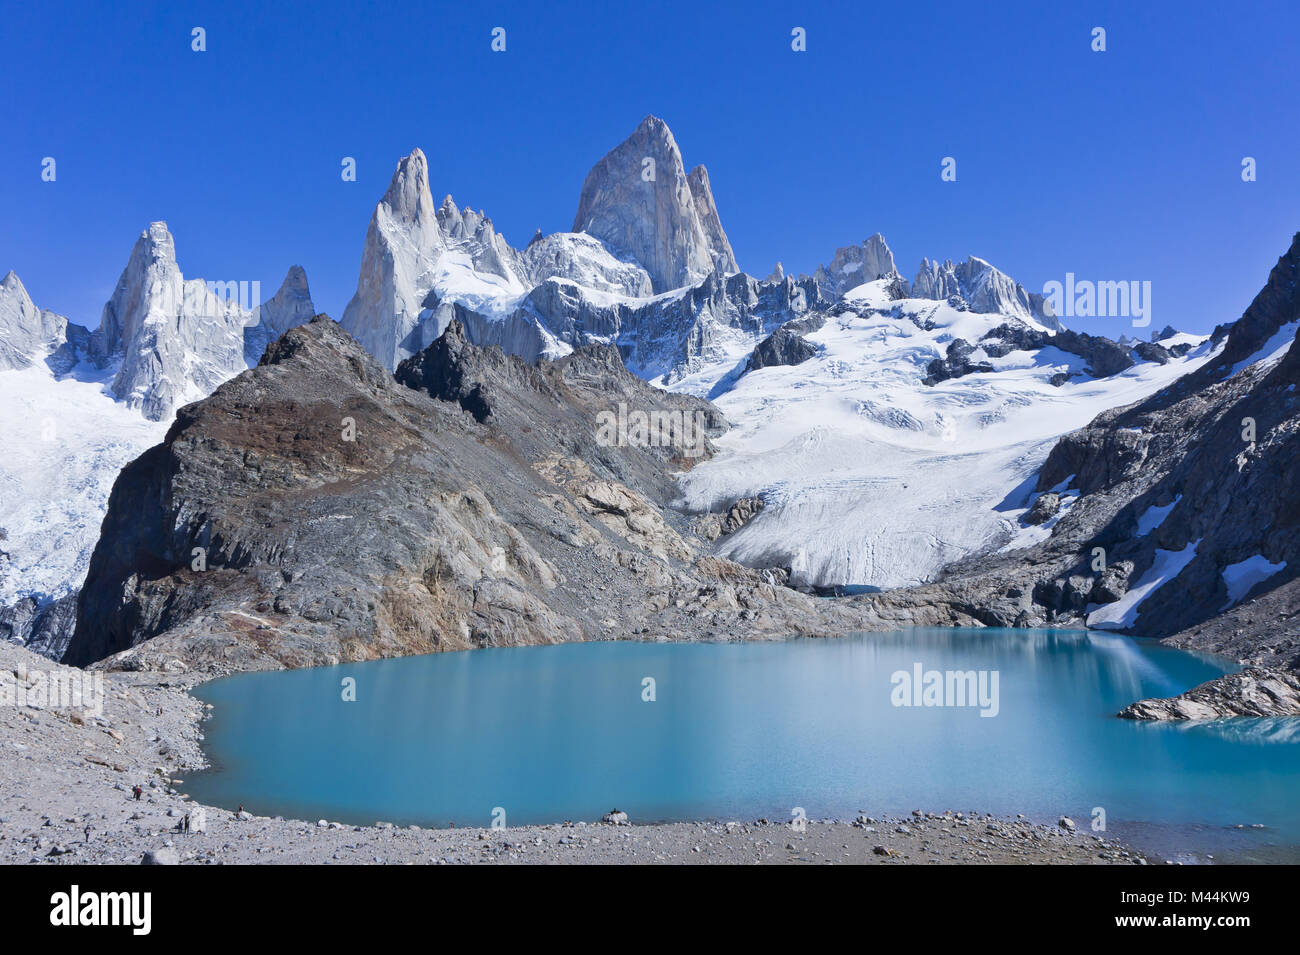 Patagonia, Cerro Fitz Roy. View from the lake - Stock Image